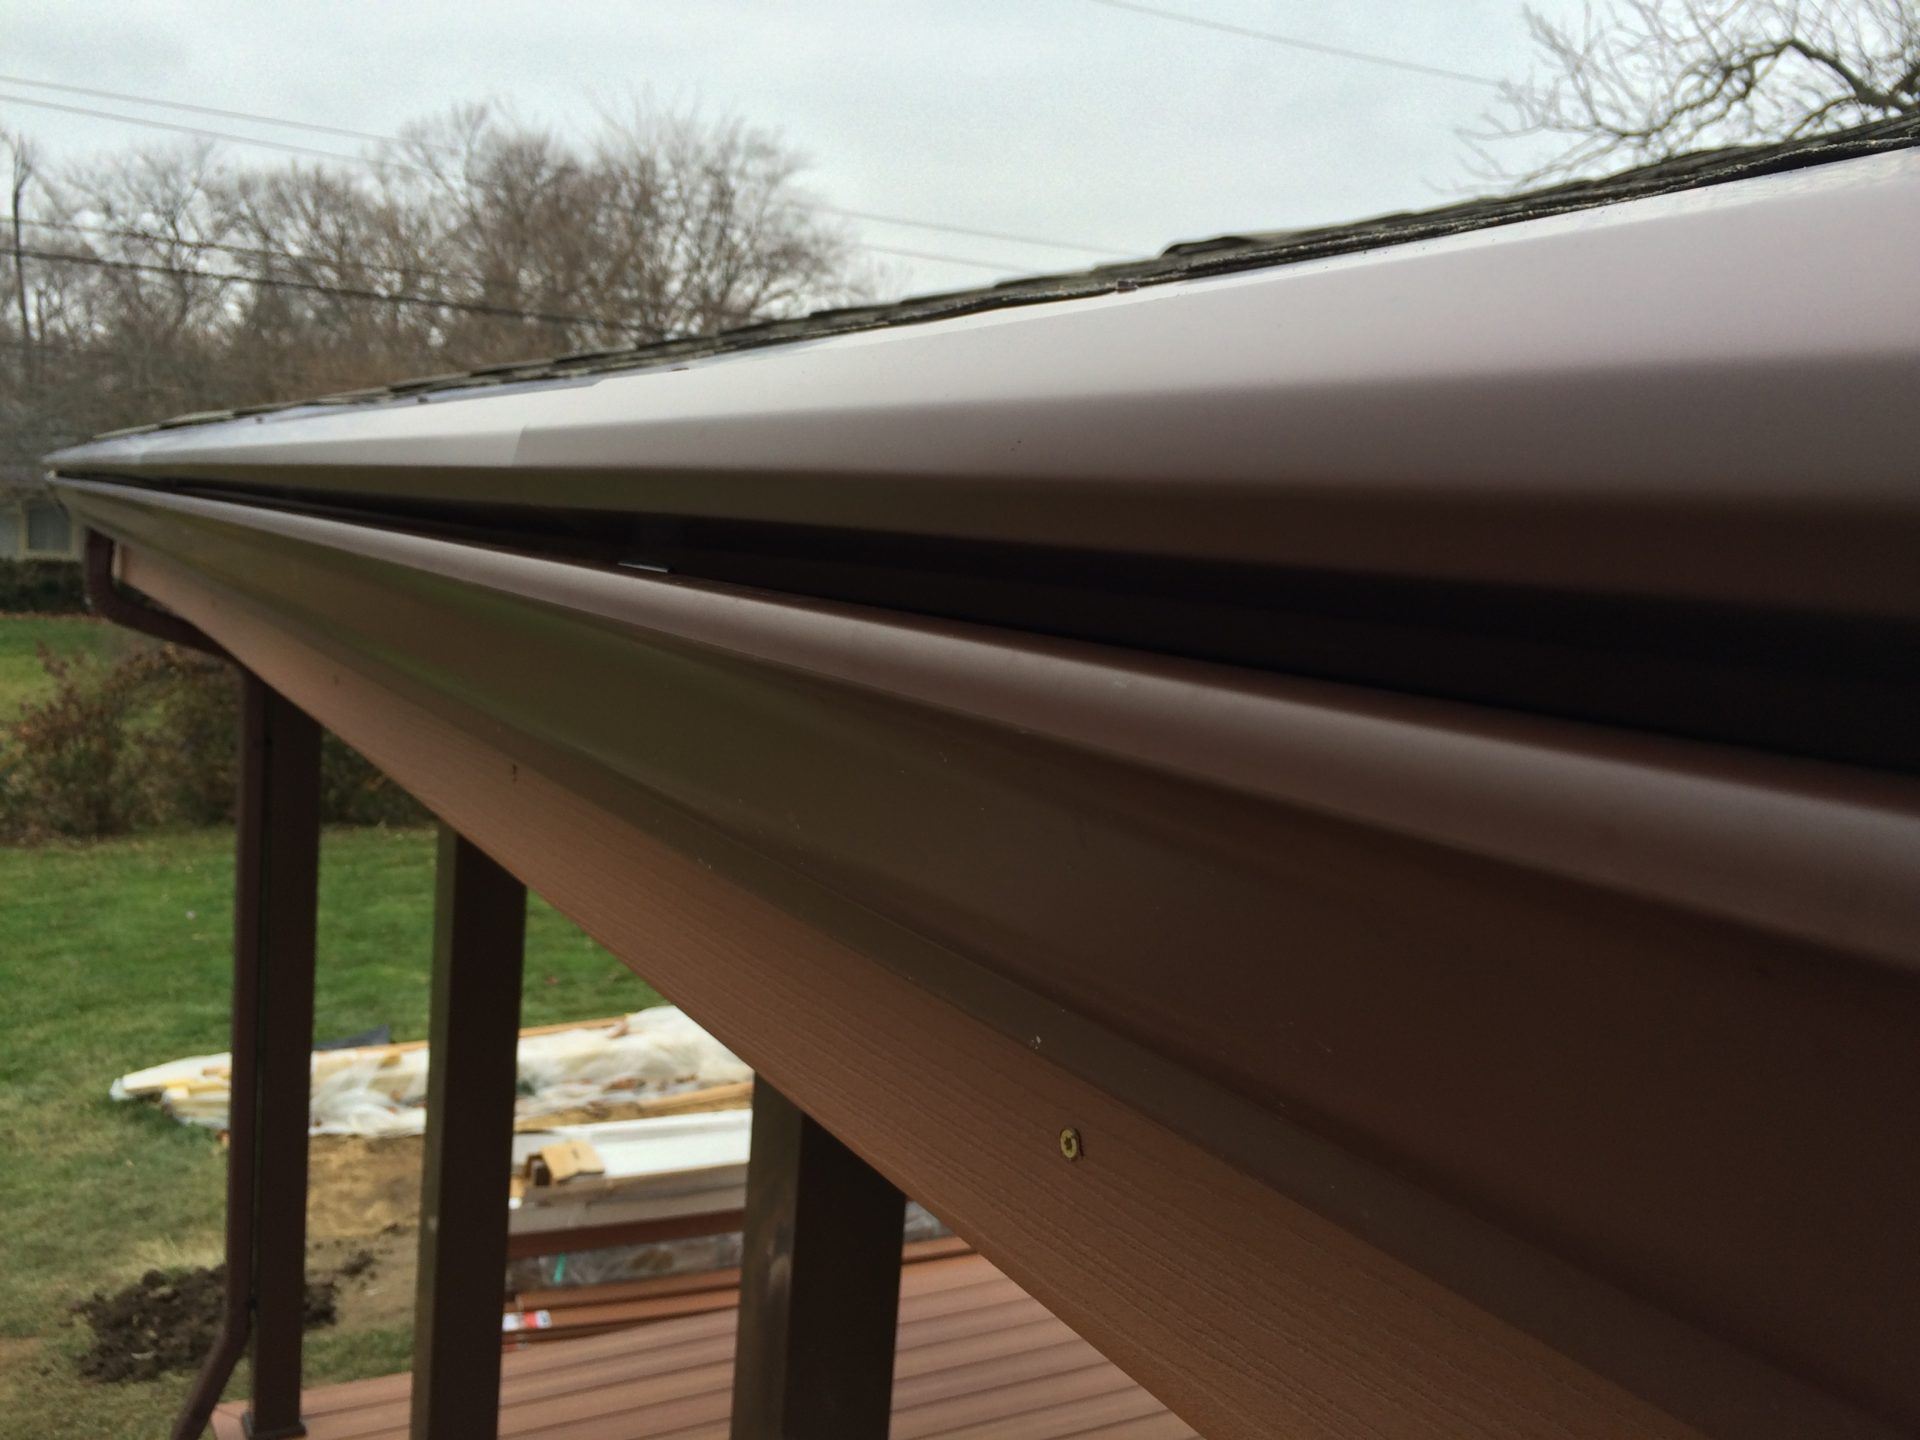 gutterlock gutter guard installed on 5 inch brown gutters in columbus ohio